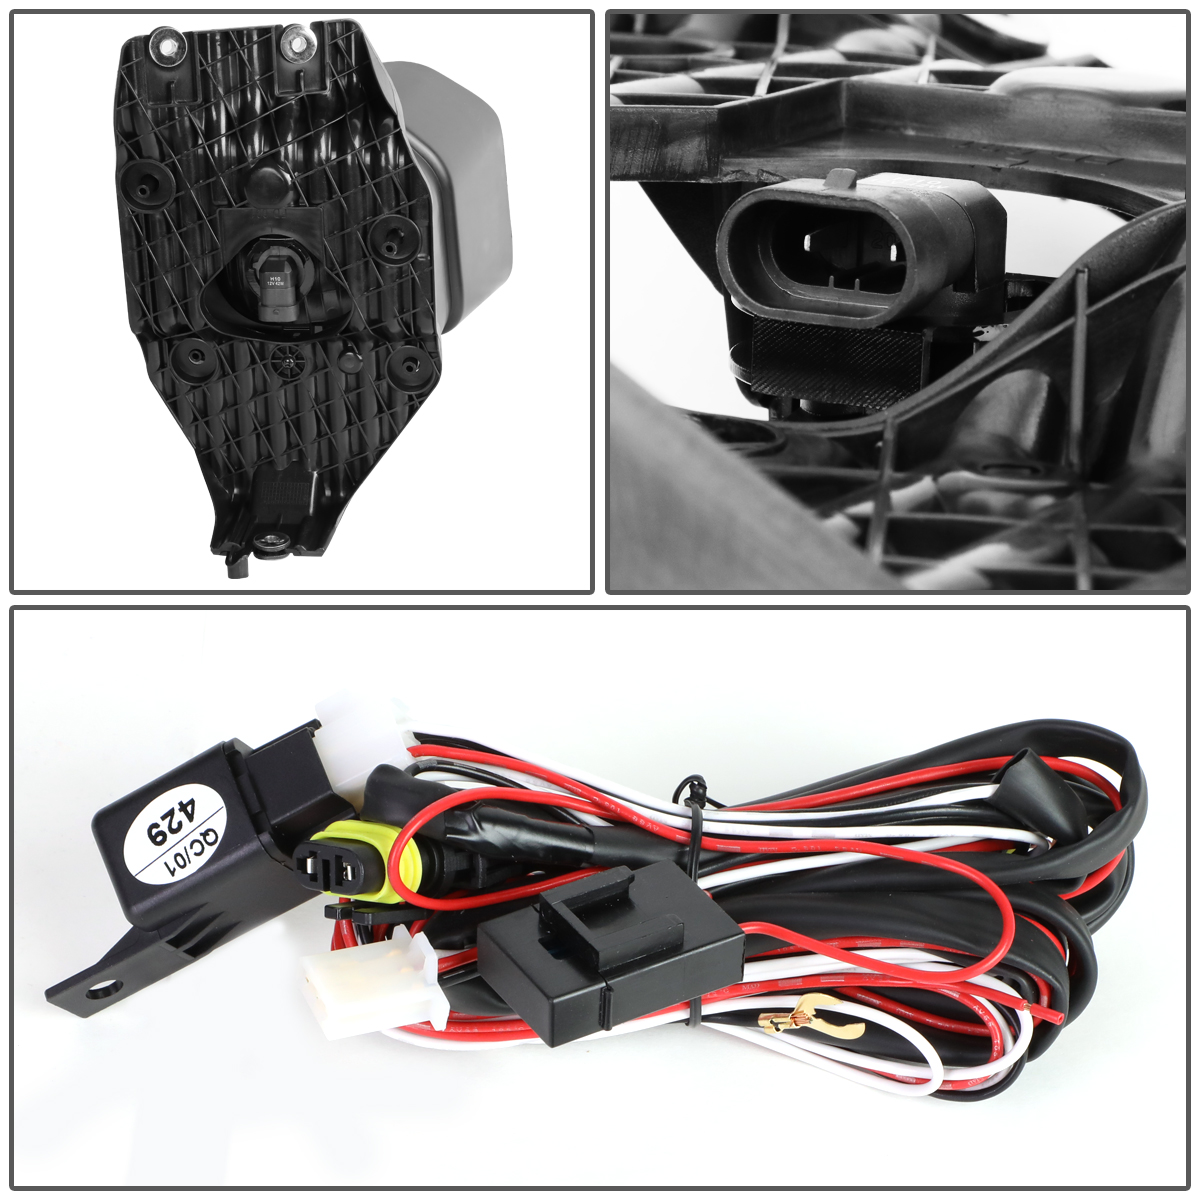 05f 250 Fog Light Wiring Diagram Get A Used Jeep 2011 Ford F250 Harness Diy Enthusiasts Rh Broadwaycomputers Us Lights With Relay 97